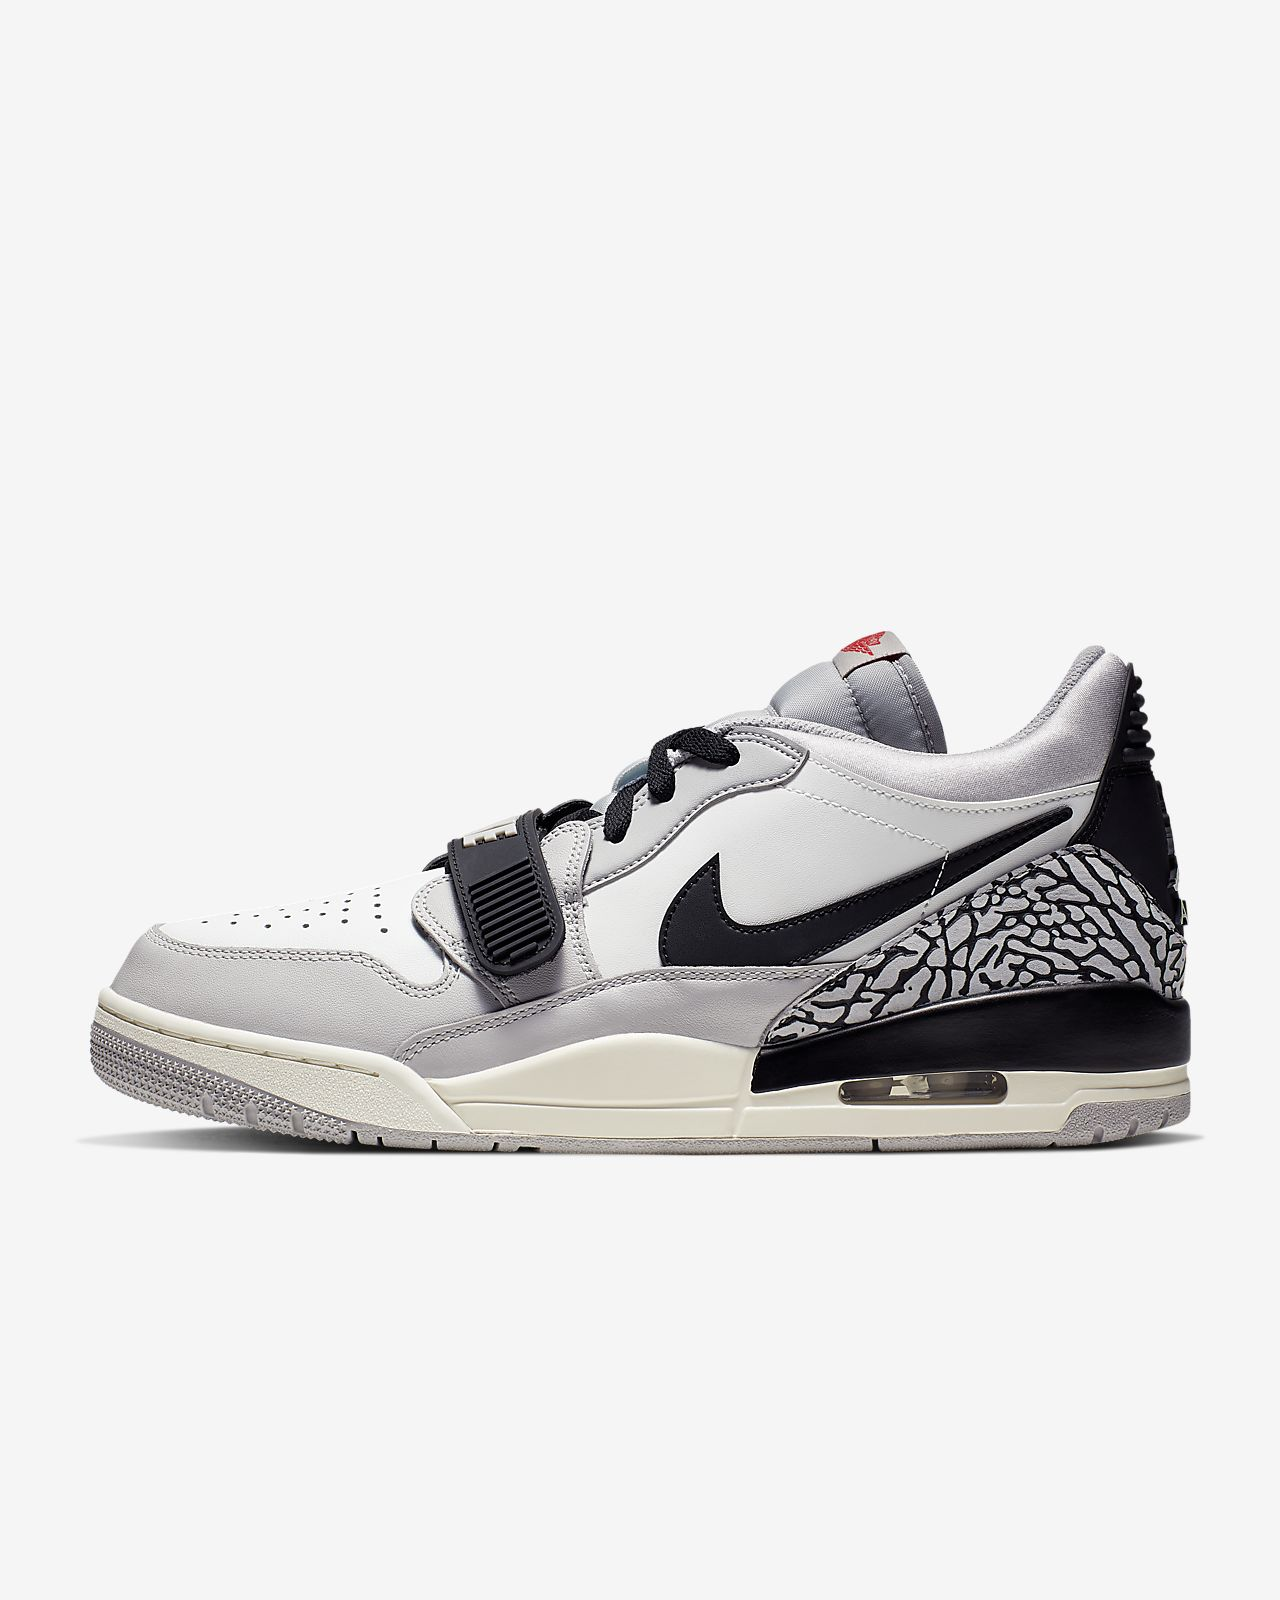 Air Jordan Legacy 312 Low Herenschoen